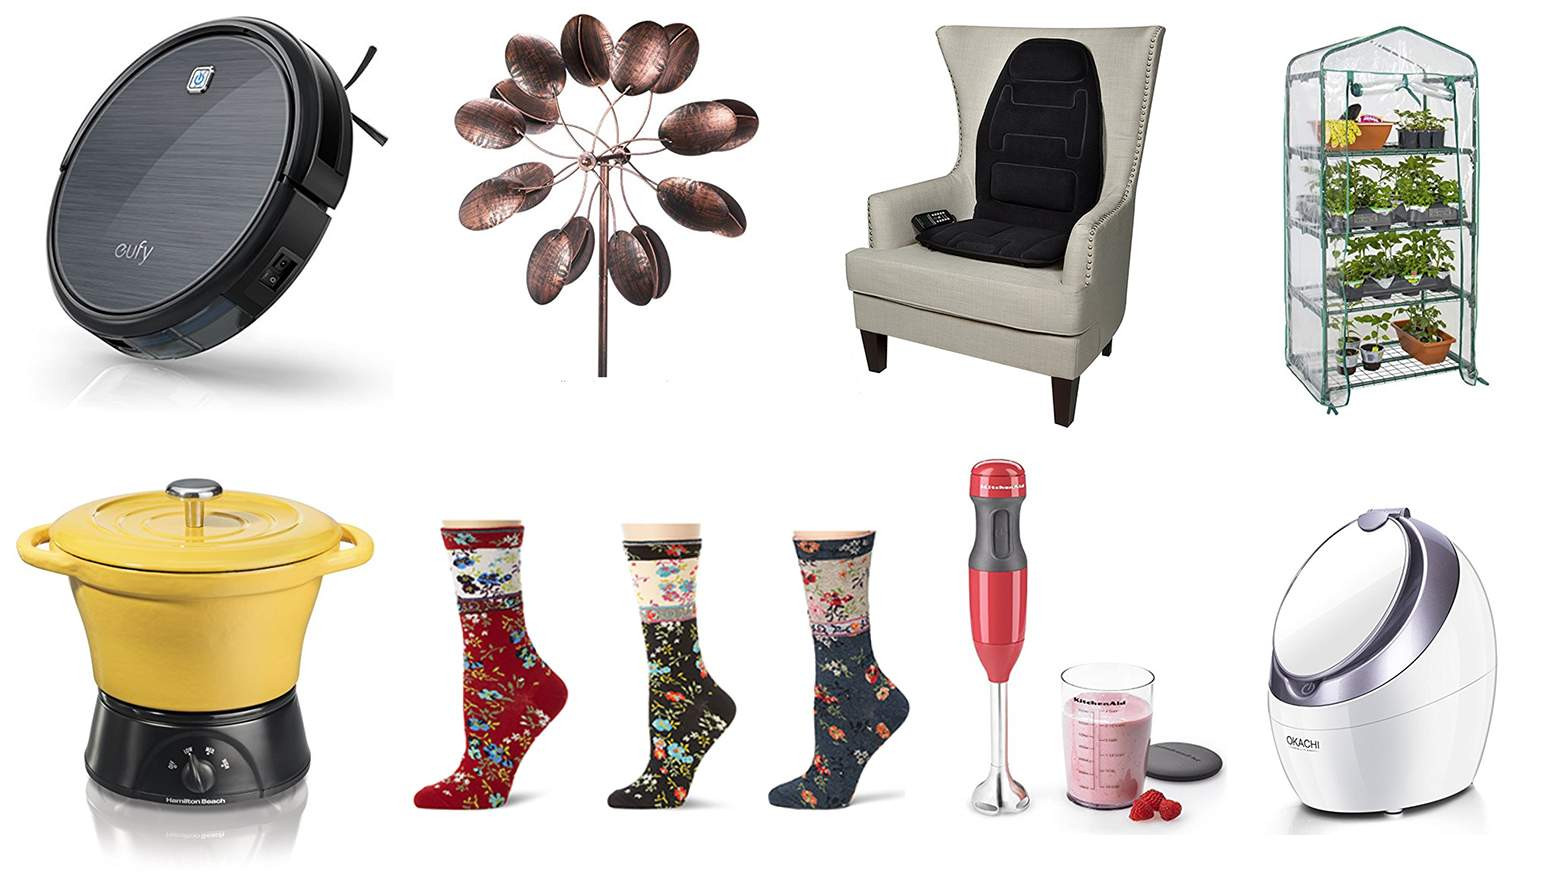 Best ideas about Cool Gift Ideas For Women . Save or Pin Top 10 Best Cool Mother's Day Gifts for Older Women Now.